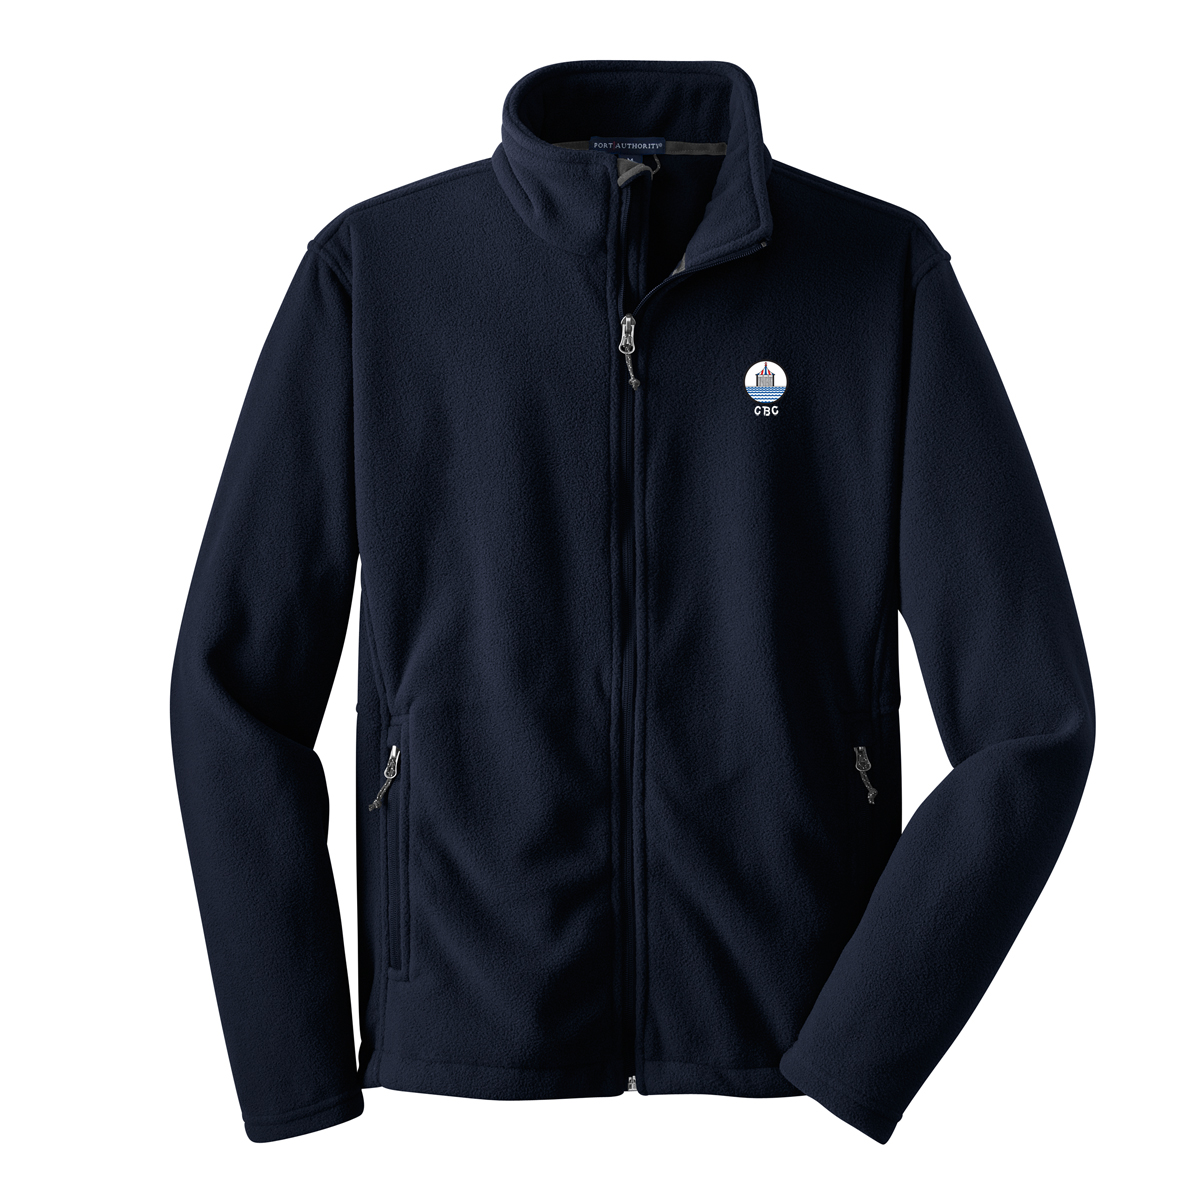 Chappaquiddick Beach Club - Youth Fleece Jacket